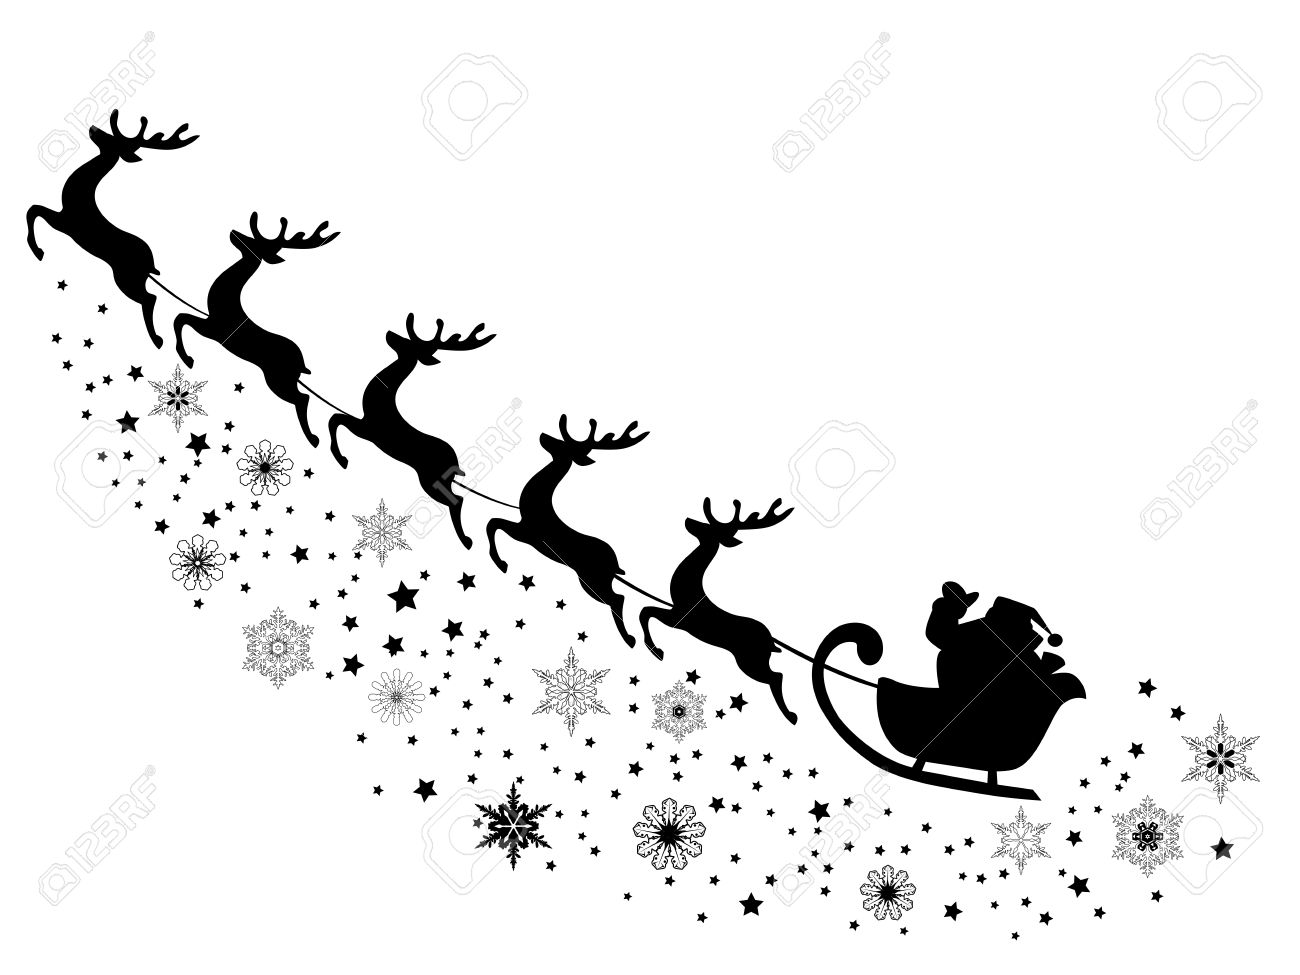 Vector Illustration Of Santa Claus Flying With Reindeer Royalty Free